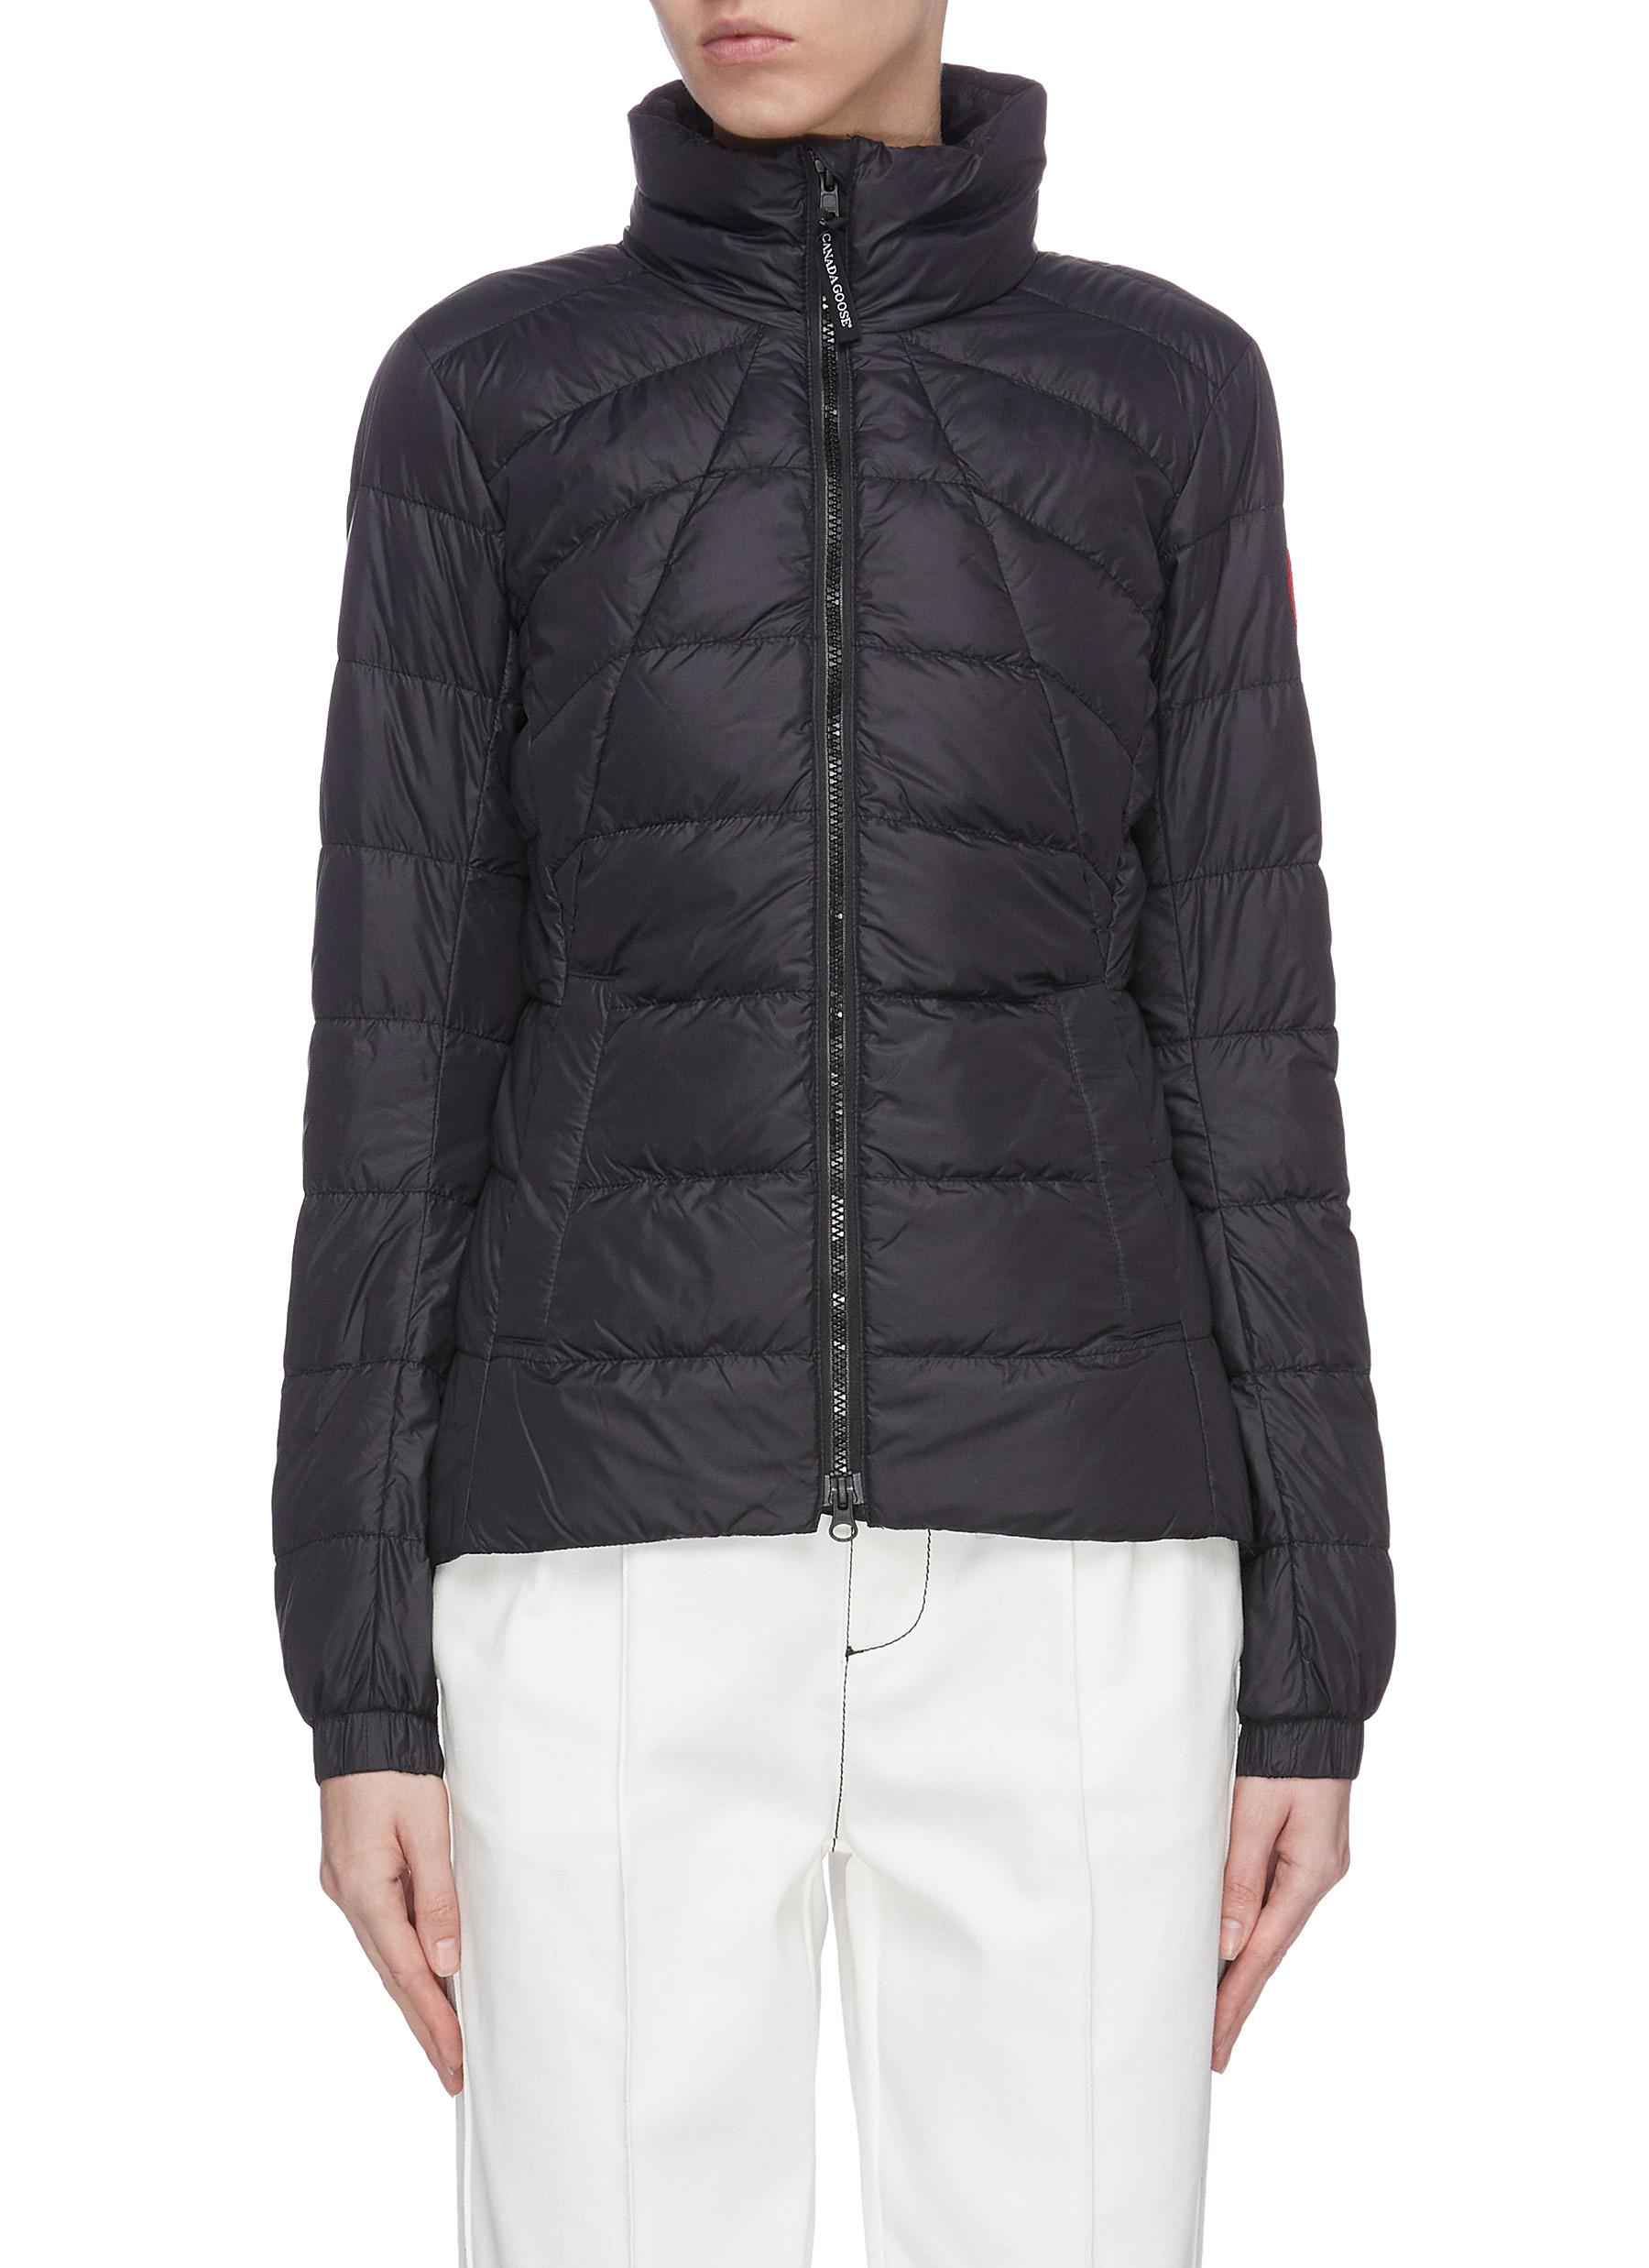 Buy Canada Goose Jackets 'Abbott' stand collar puffer jacket